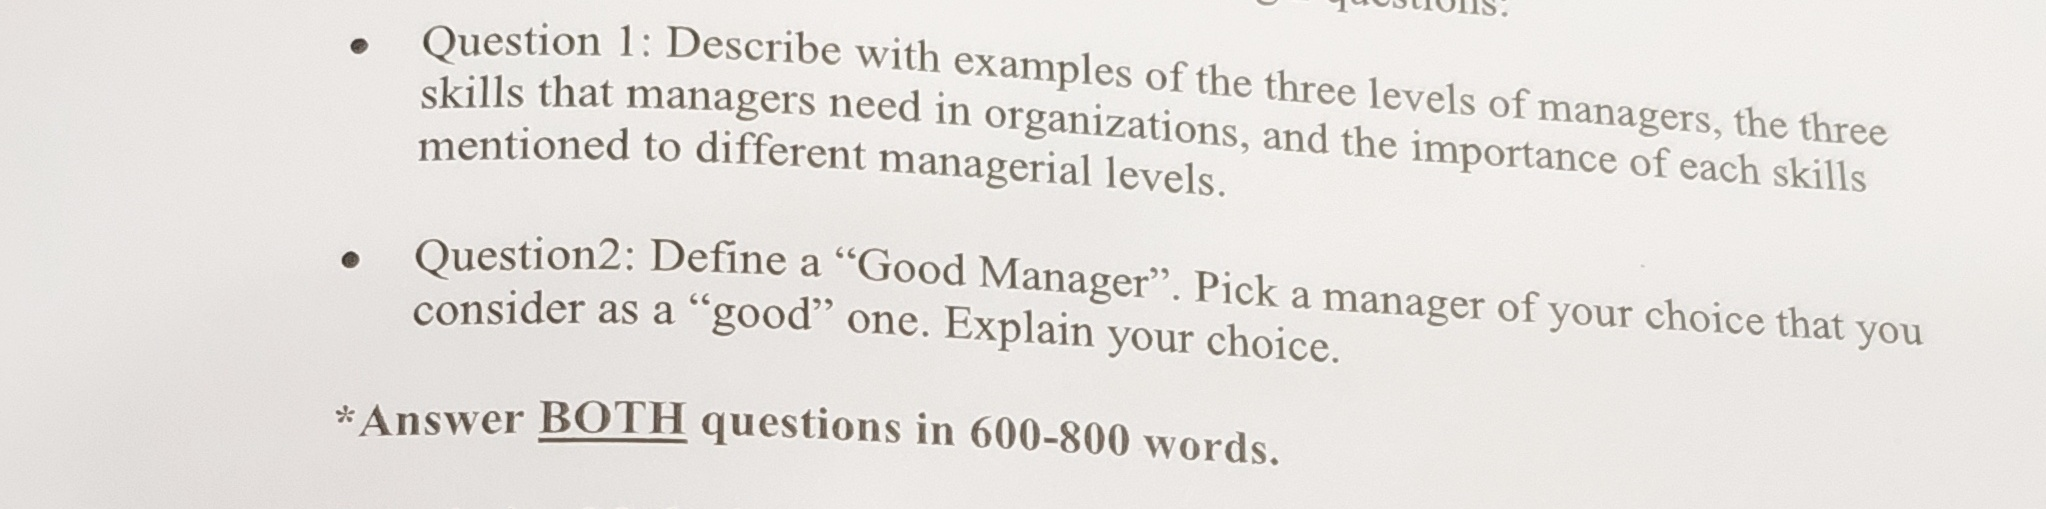 "TOStIOIIS. Question 1: Describe with examples of the three levels of managers, the three skills that managers need in organizations, and the importance of each skills mentioned to different managerial levels. Ouestion2: Define a ""Good Manager"". Pick a manager of your choice that you consider as a ""good"" one. Explain your choice. Answer BOTH questions in 600-800 words."